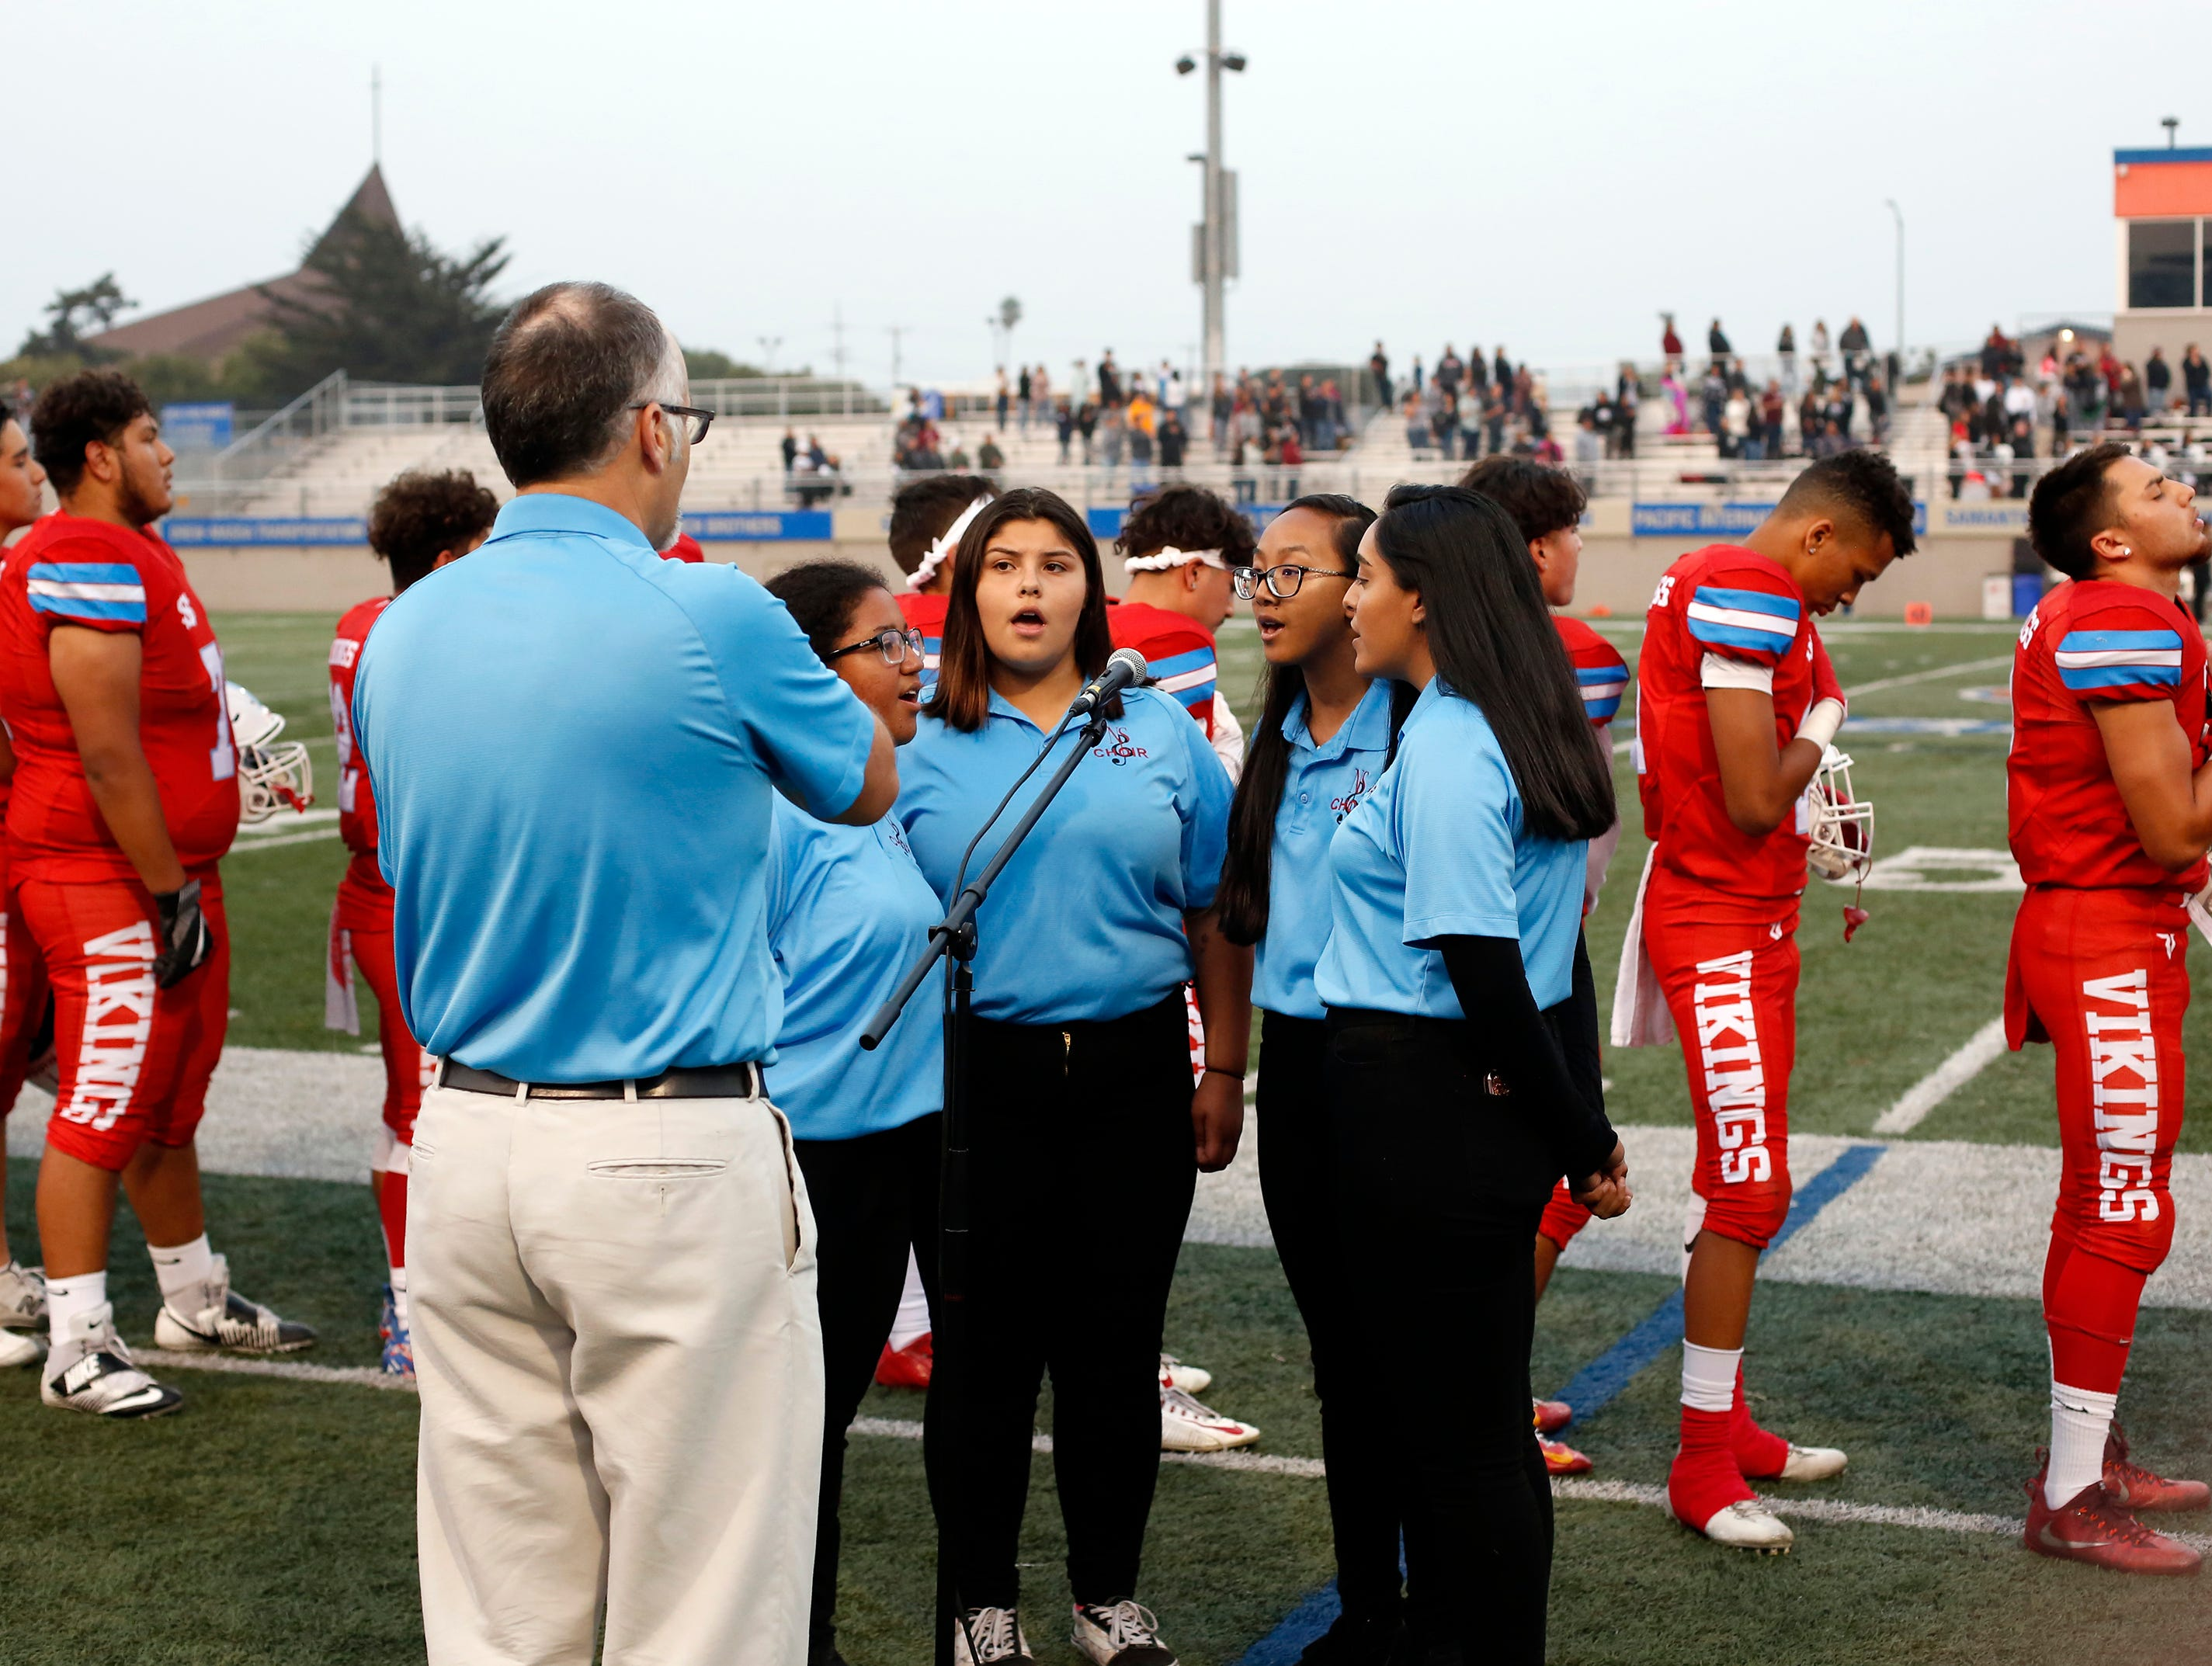 North Salinas players listen to the National Anthem sung by choir members before taking the field against North Monterey County during football at Rabobank Stadium in Salinas on Thursday August 23, 2018.